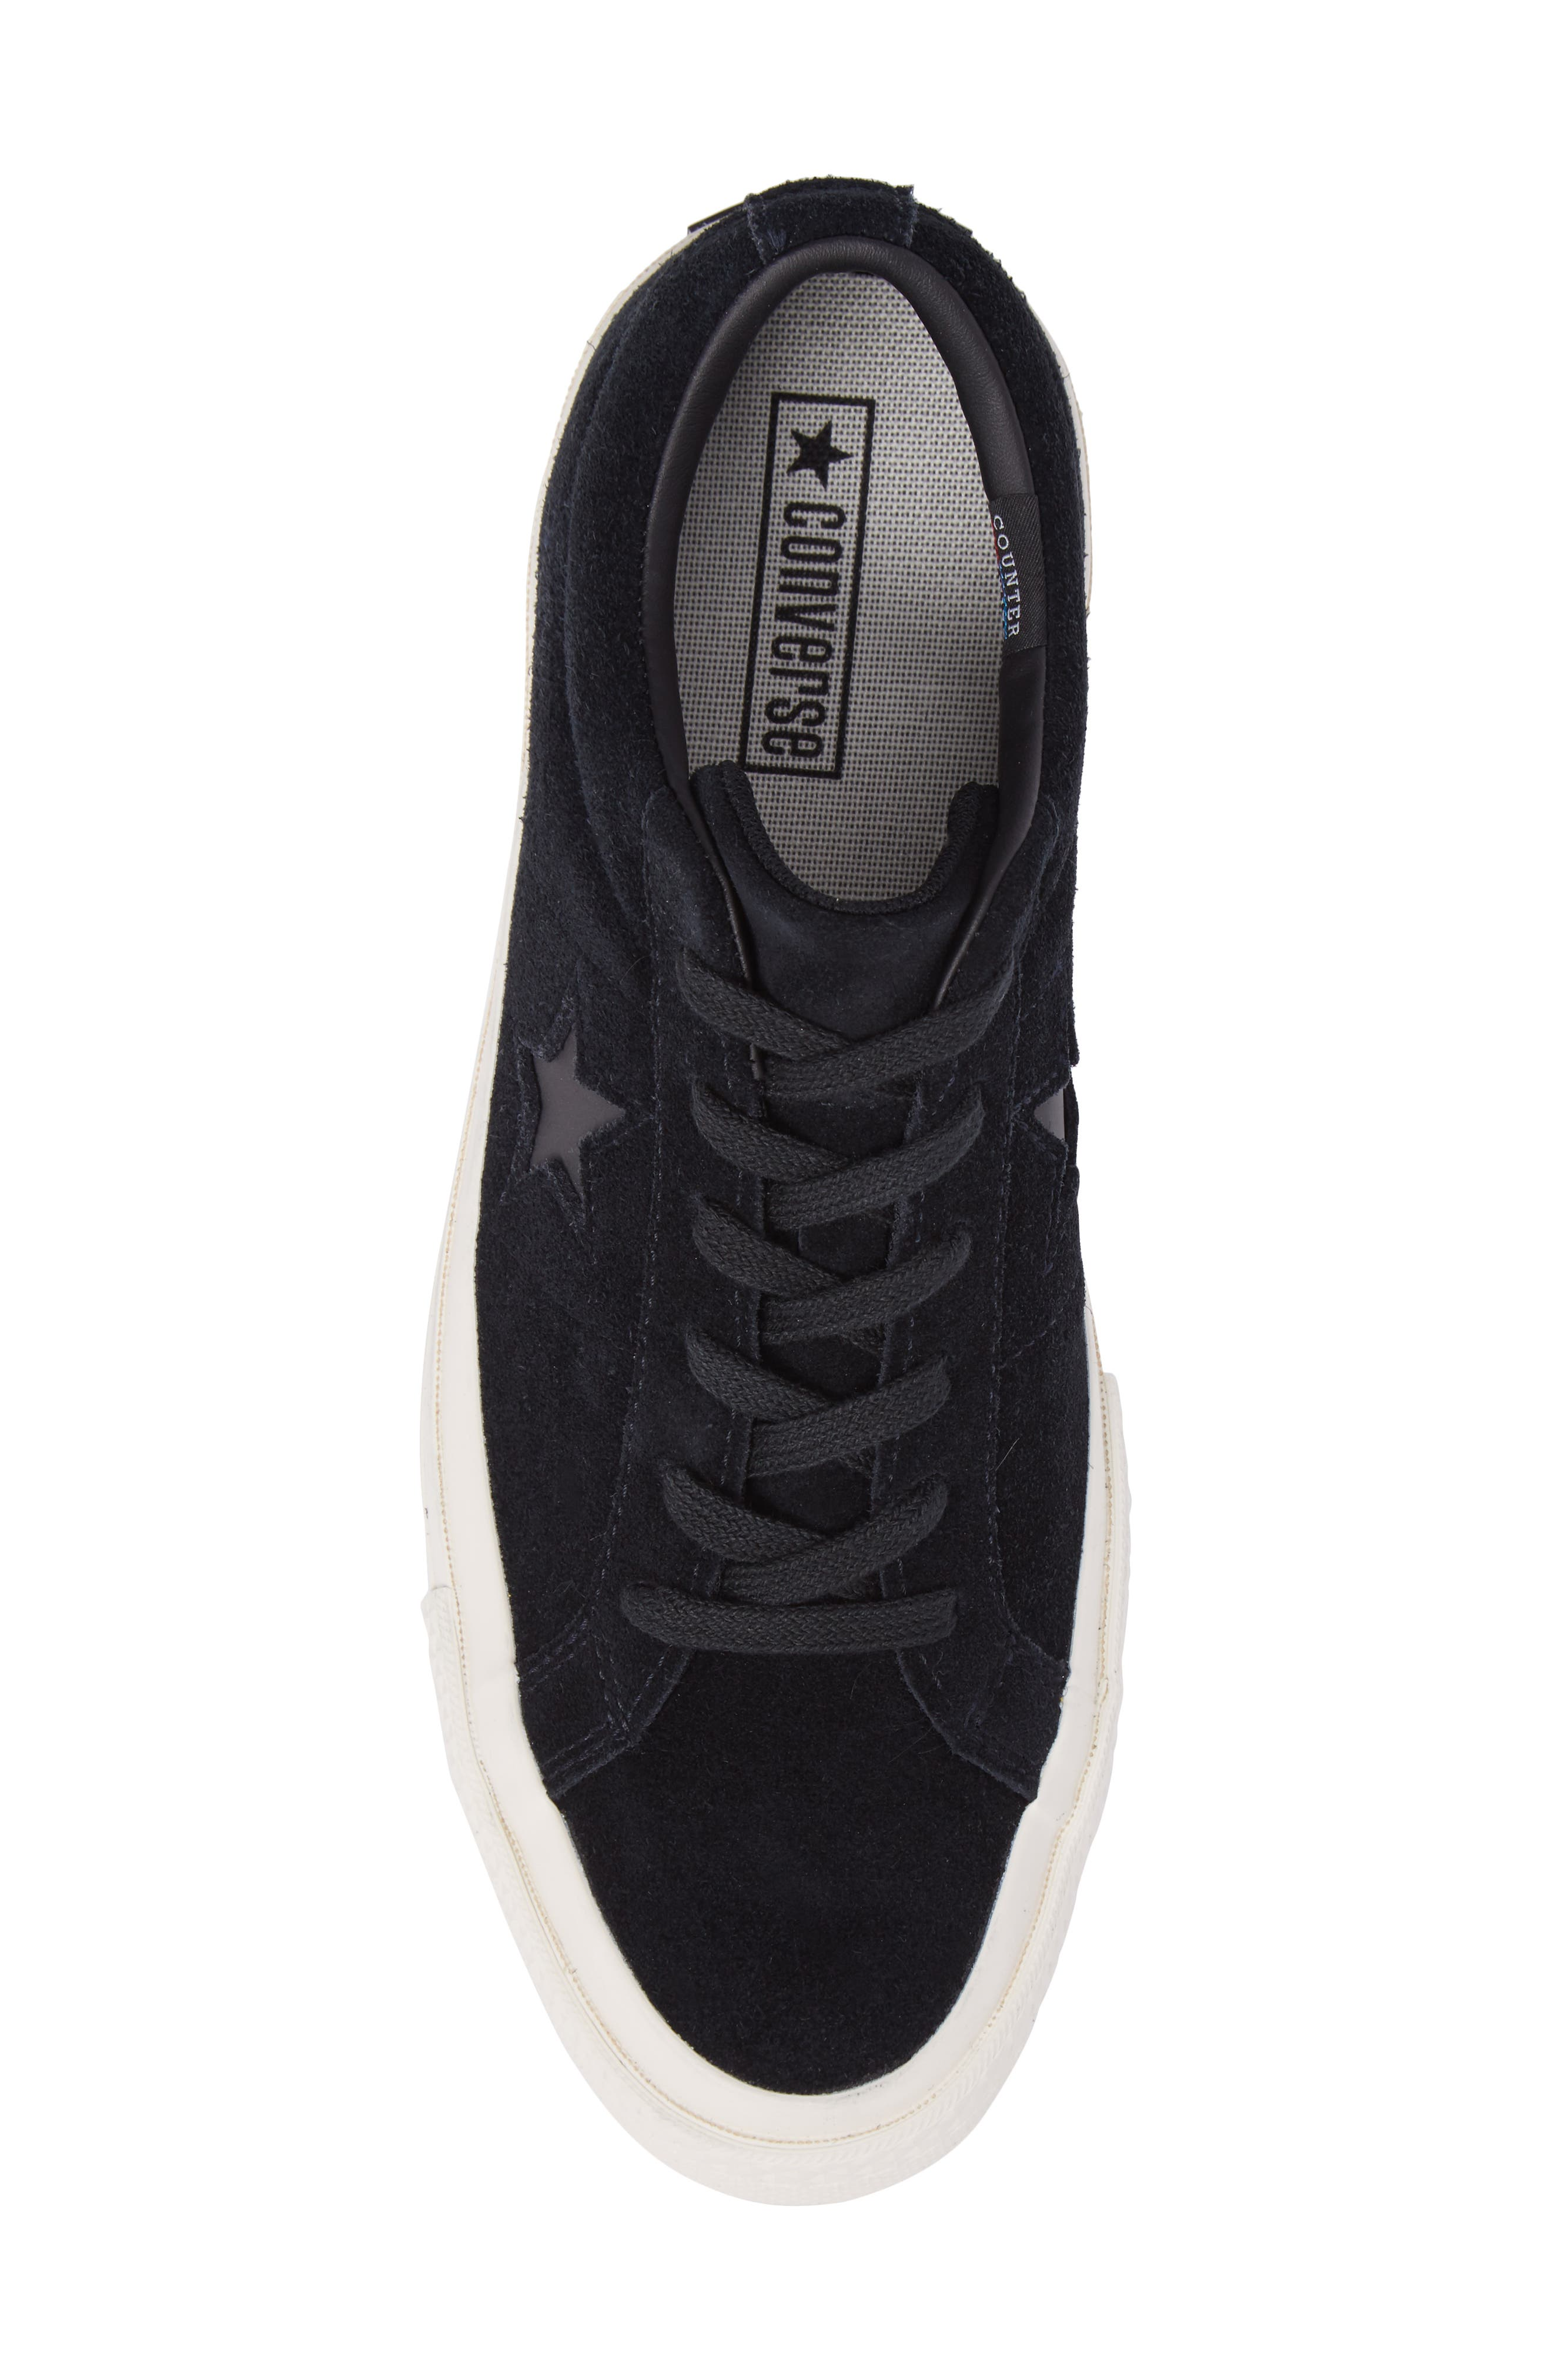 CONVERSE,                             One Star Sneaker,                             Alternate thumbnail 5, color,                             001